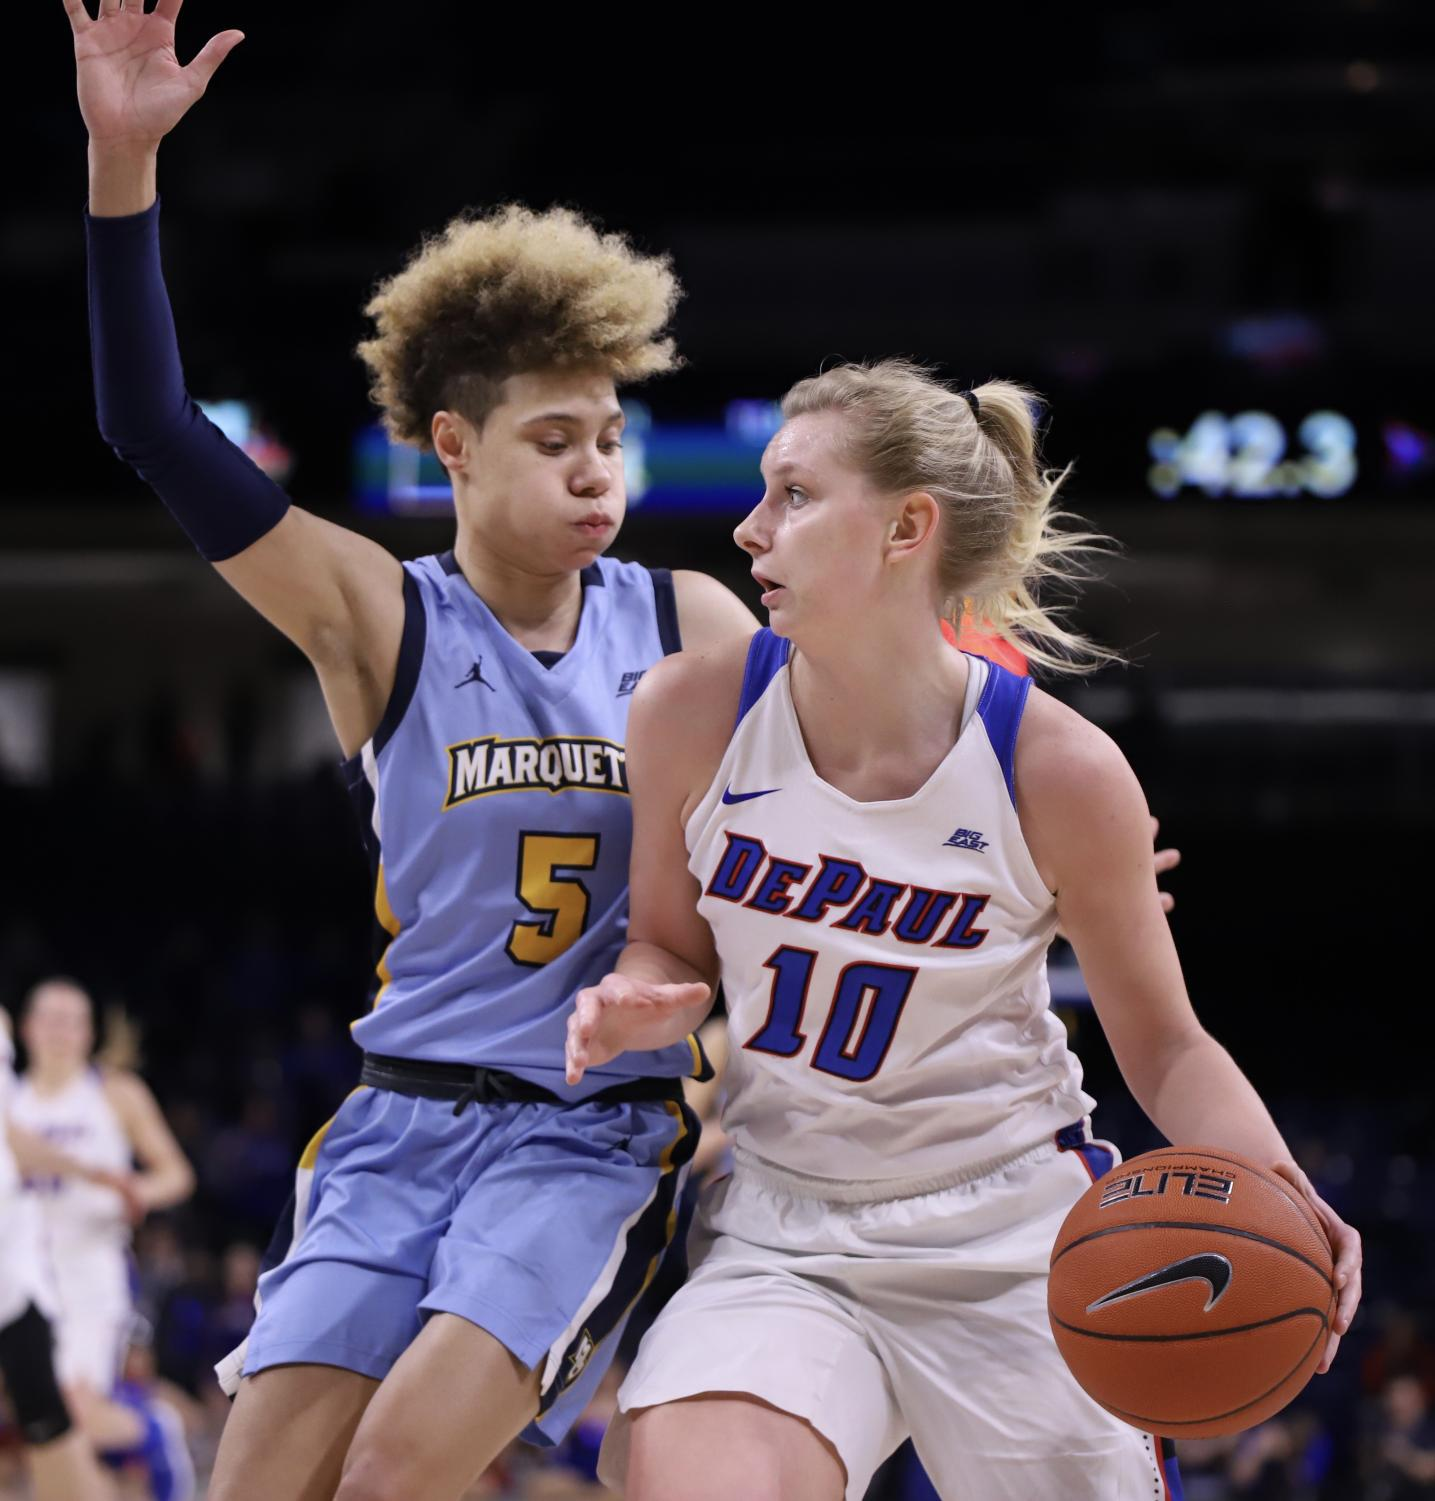 DePaul+freshman+guard+navigates+Marquette+senior+guard+Natisha+Hiedeman+Tuesday+night+at+Wintrust+Arena.+Held+finished+with+11+points+in+26+minutes+of+action.++Alexa+Sandler+%7C+The+DePaulia